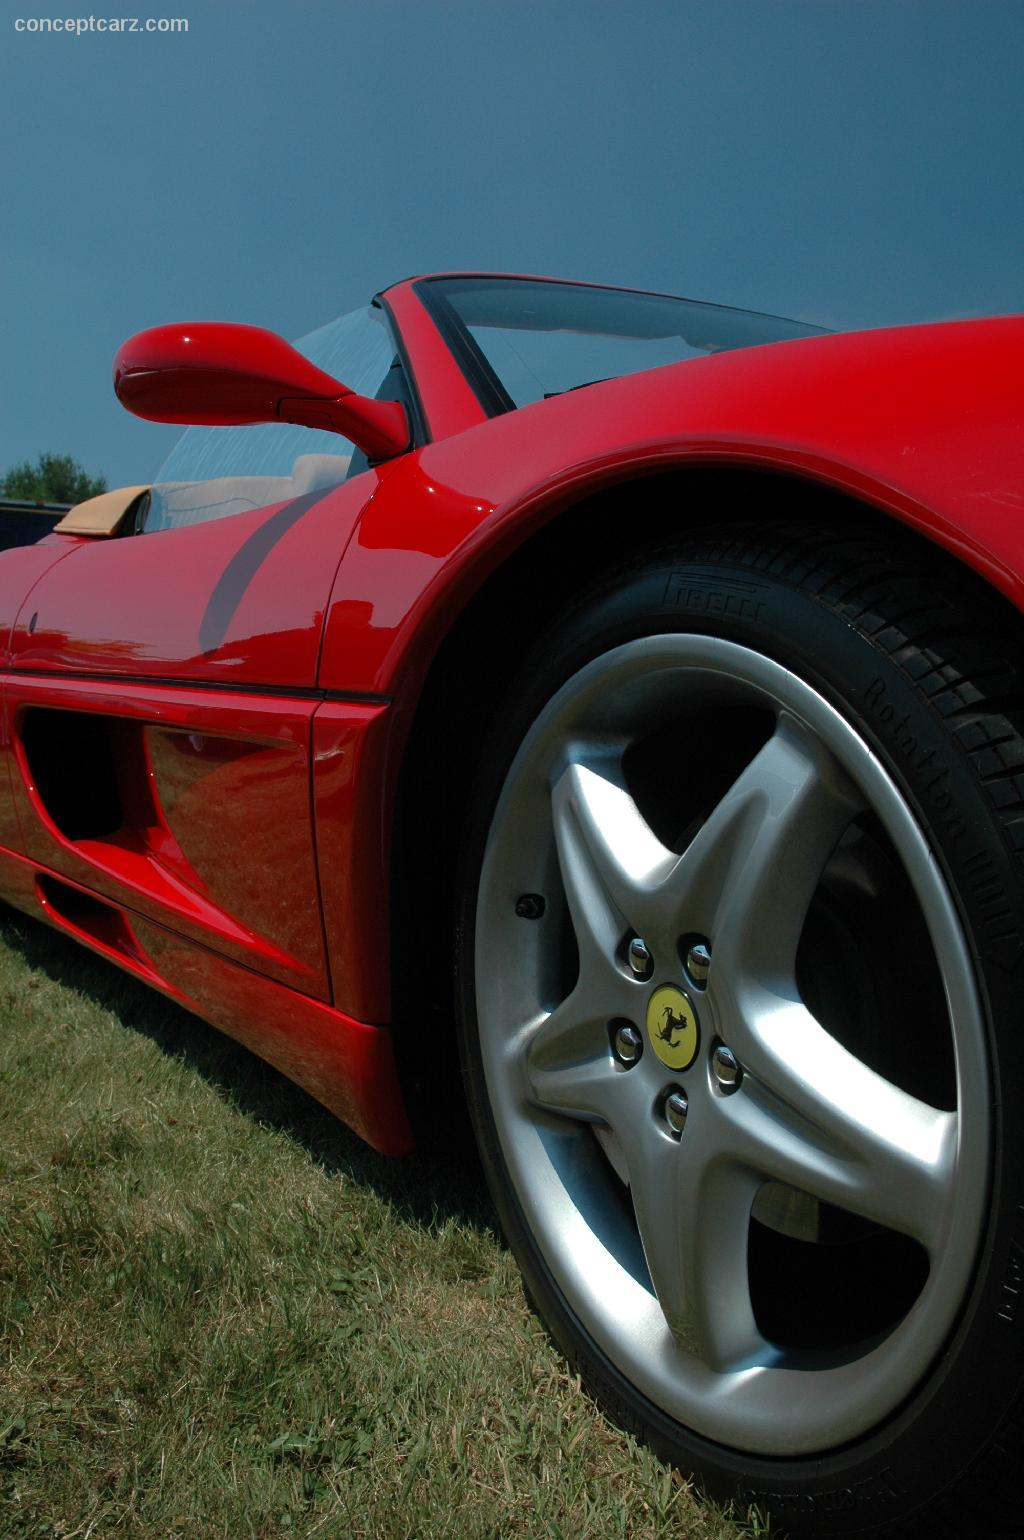 Note the images shown are representations of the 1996 ferrari f355